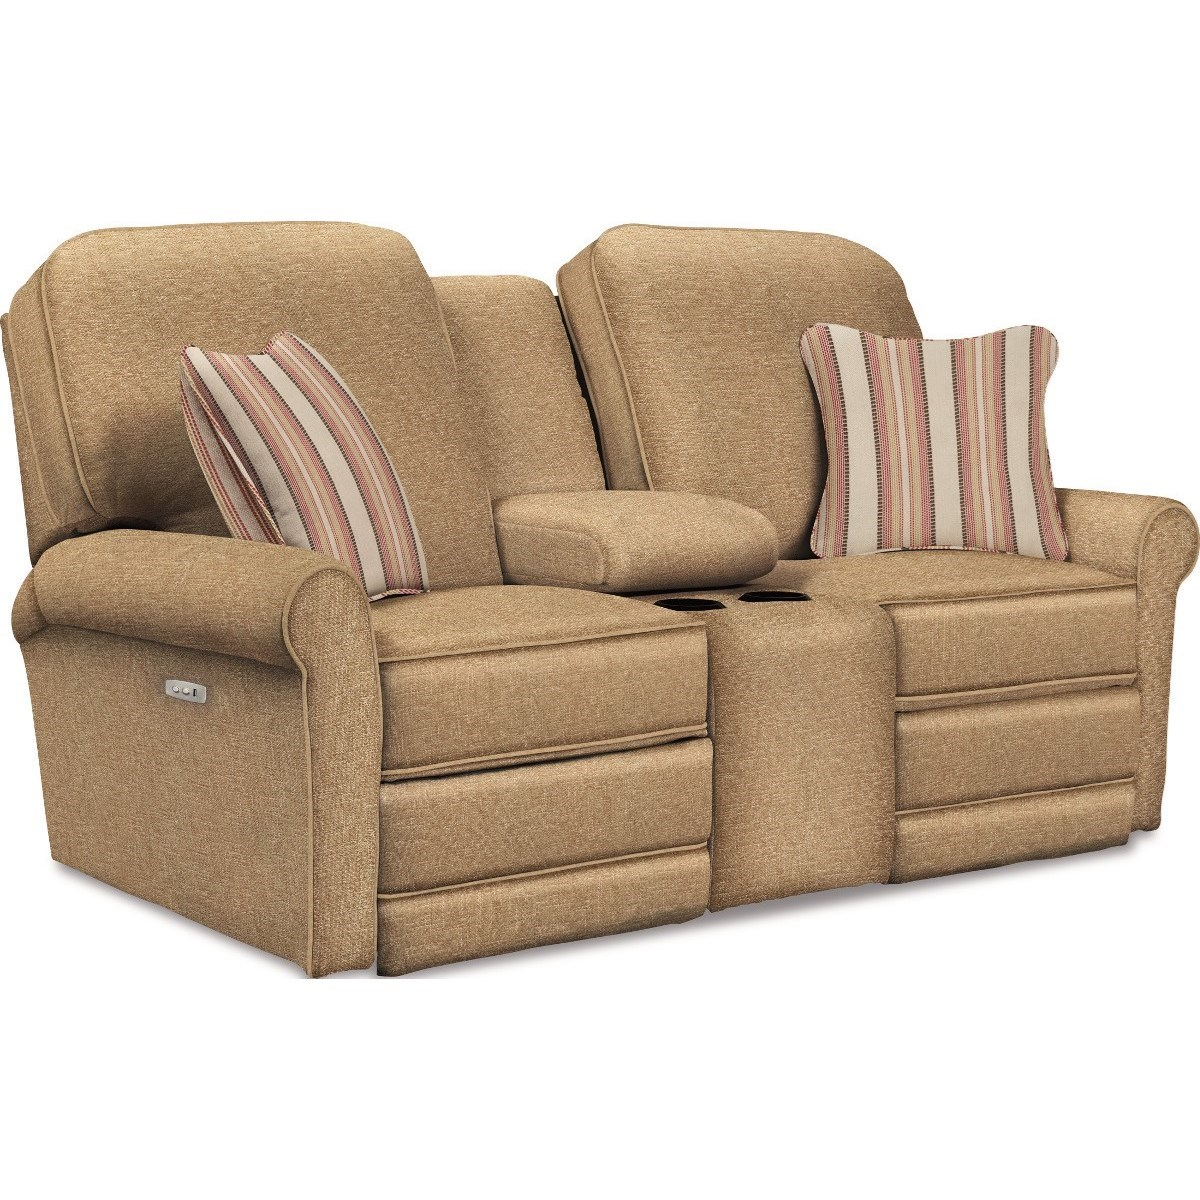 Transitional Power Reclining Loveseat with Cupholder and Storage Console